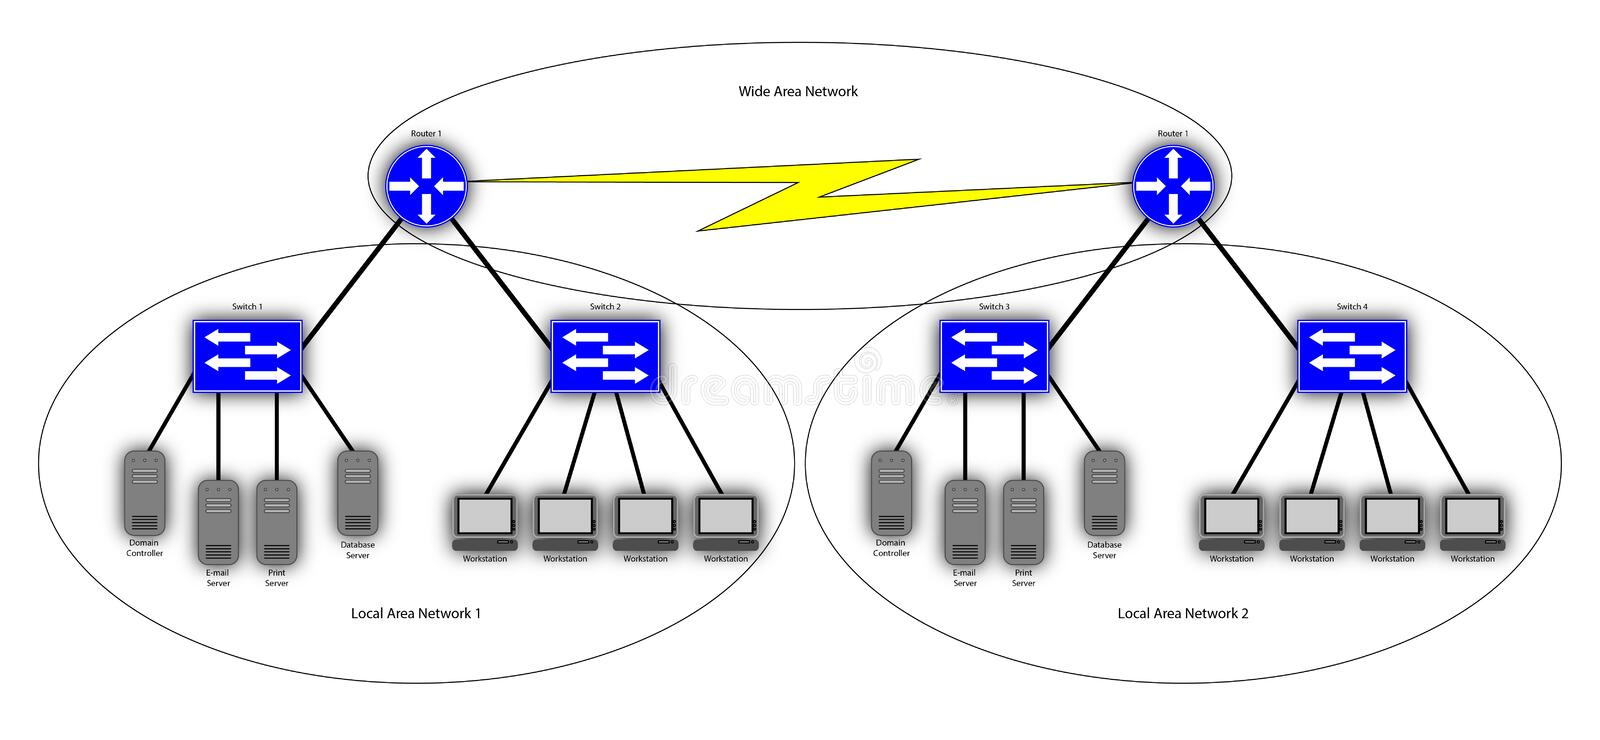 Wide Area Network Diagram Royalty Free Stock Photo - Image: 29007885